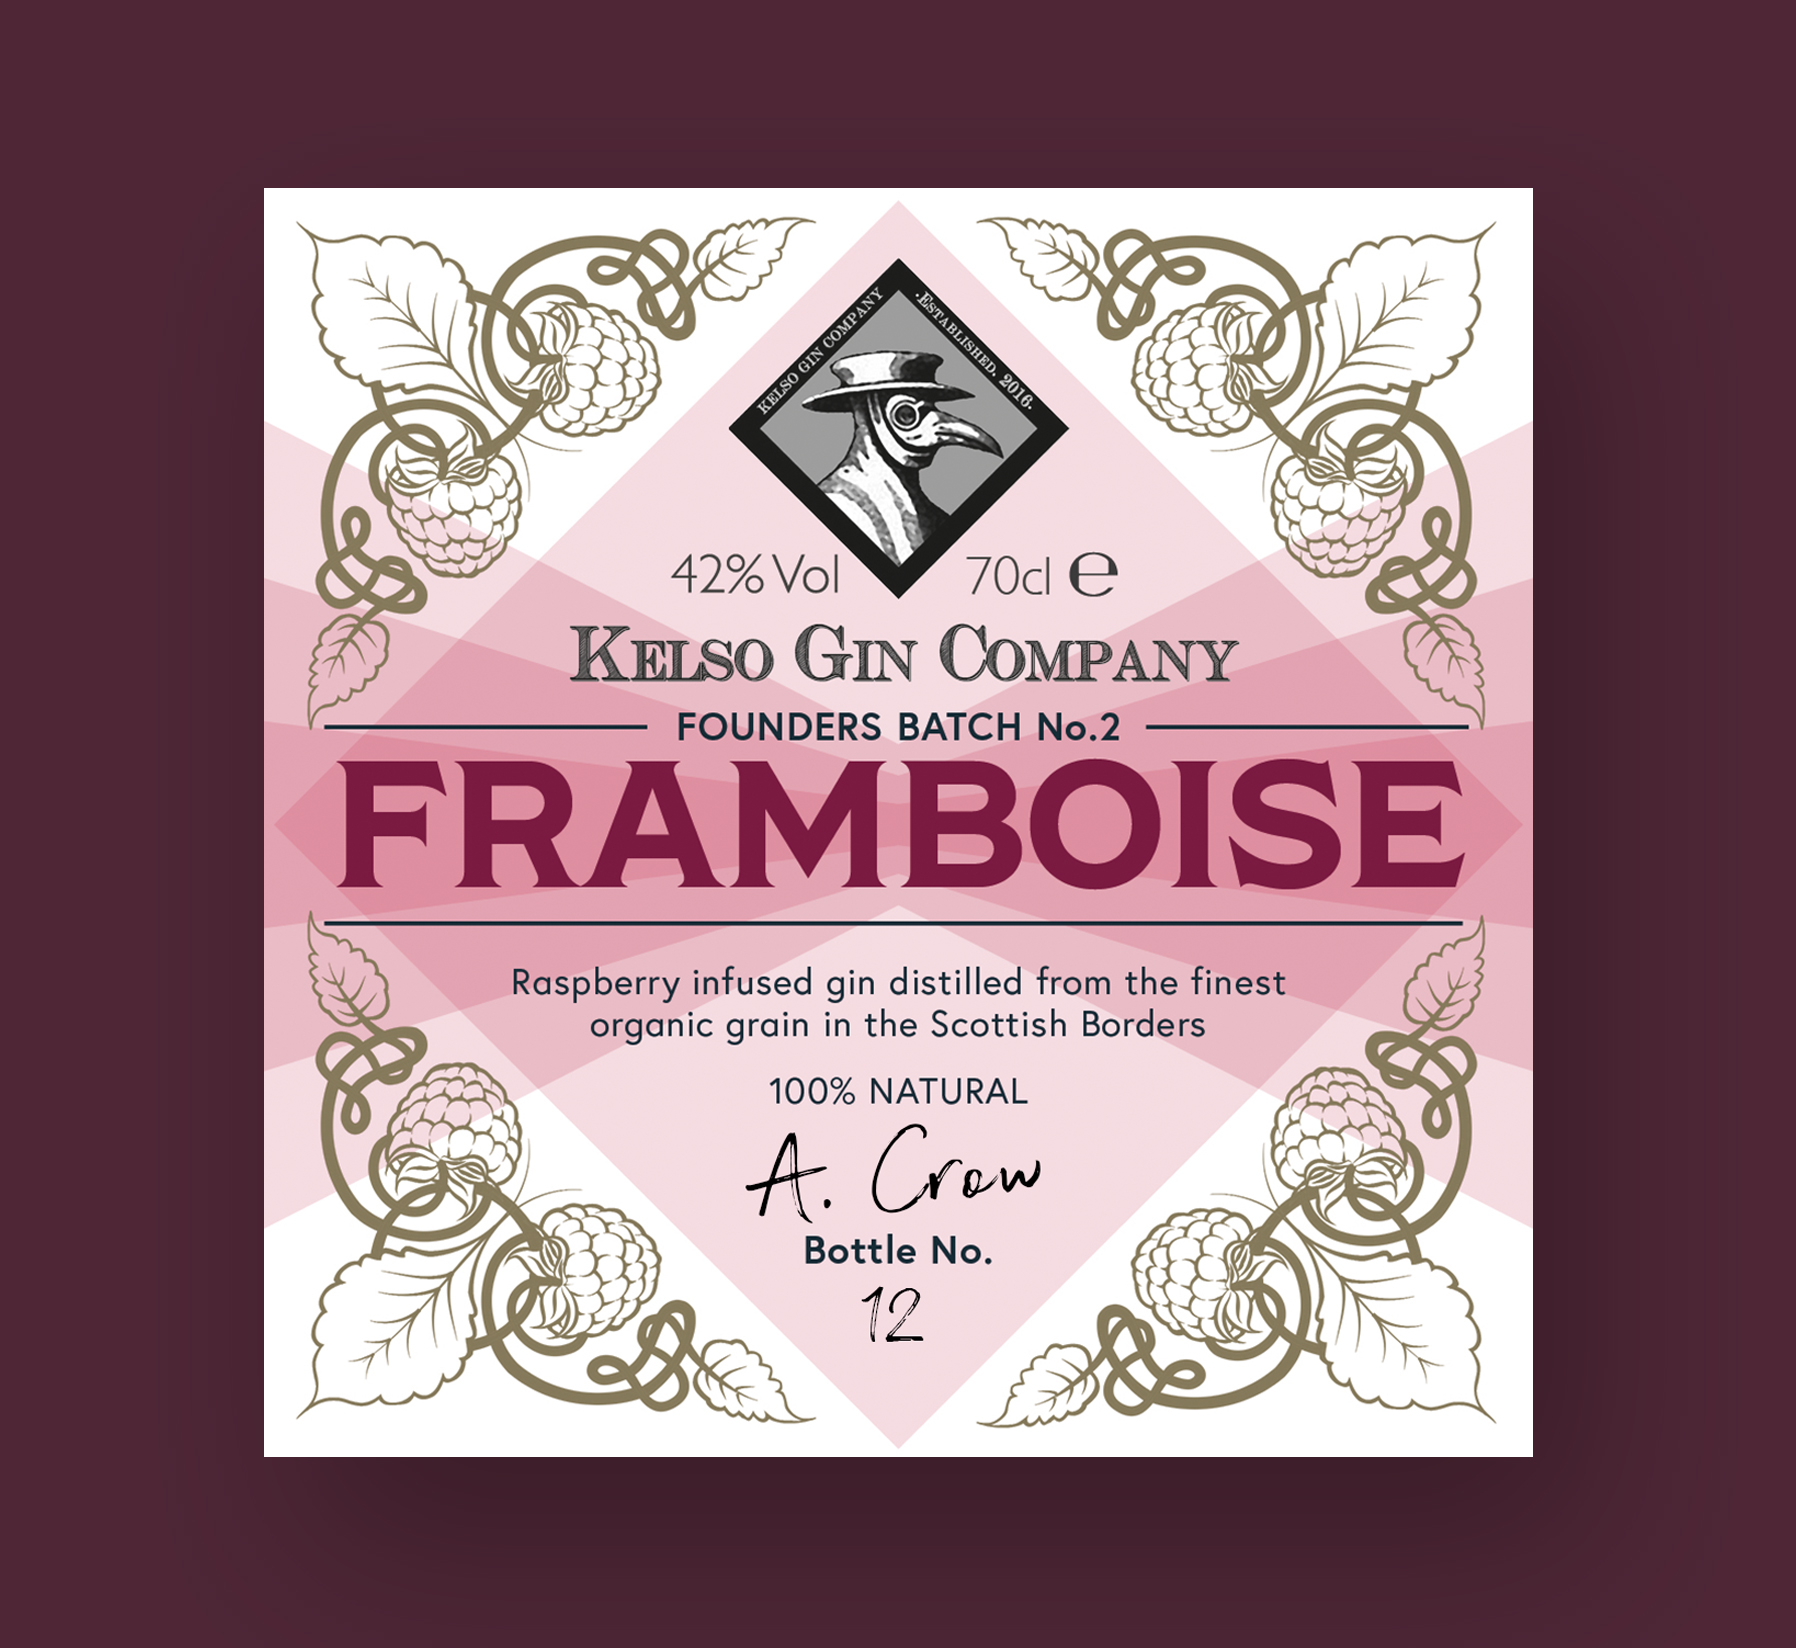 Kelso Gin Company Framboise Gin Label